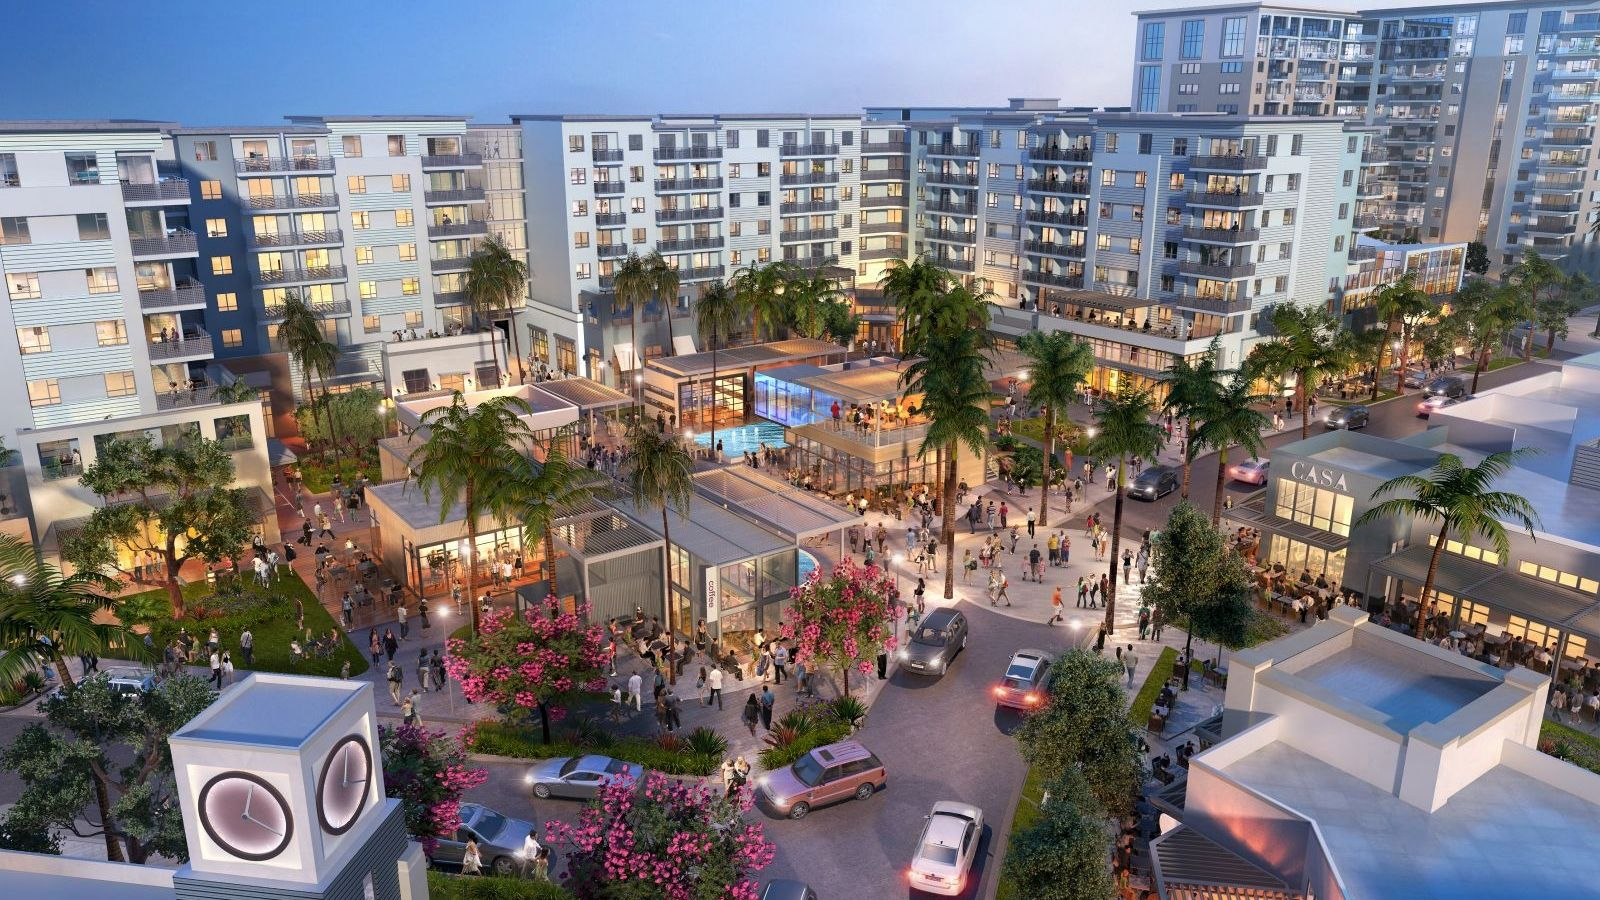 Fashion Mall Redevelopment in Plantation